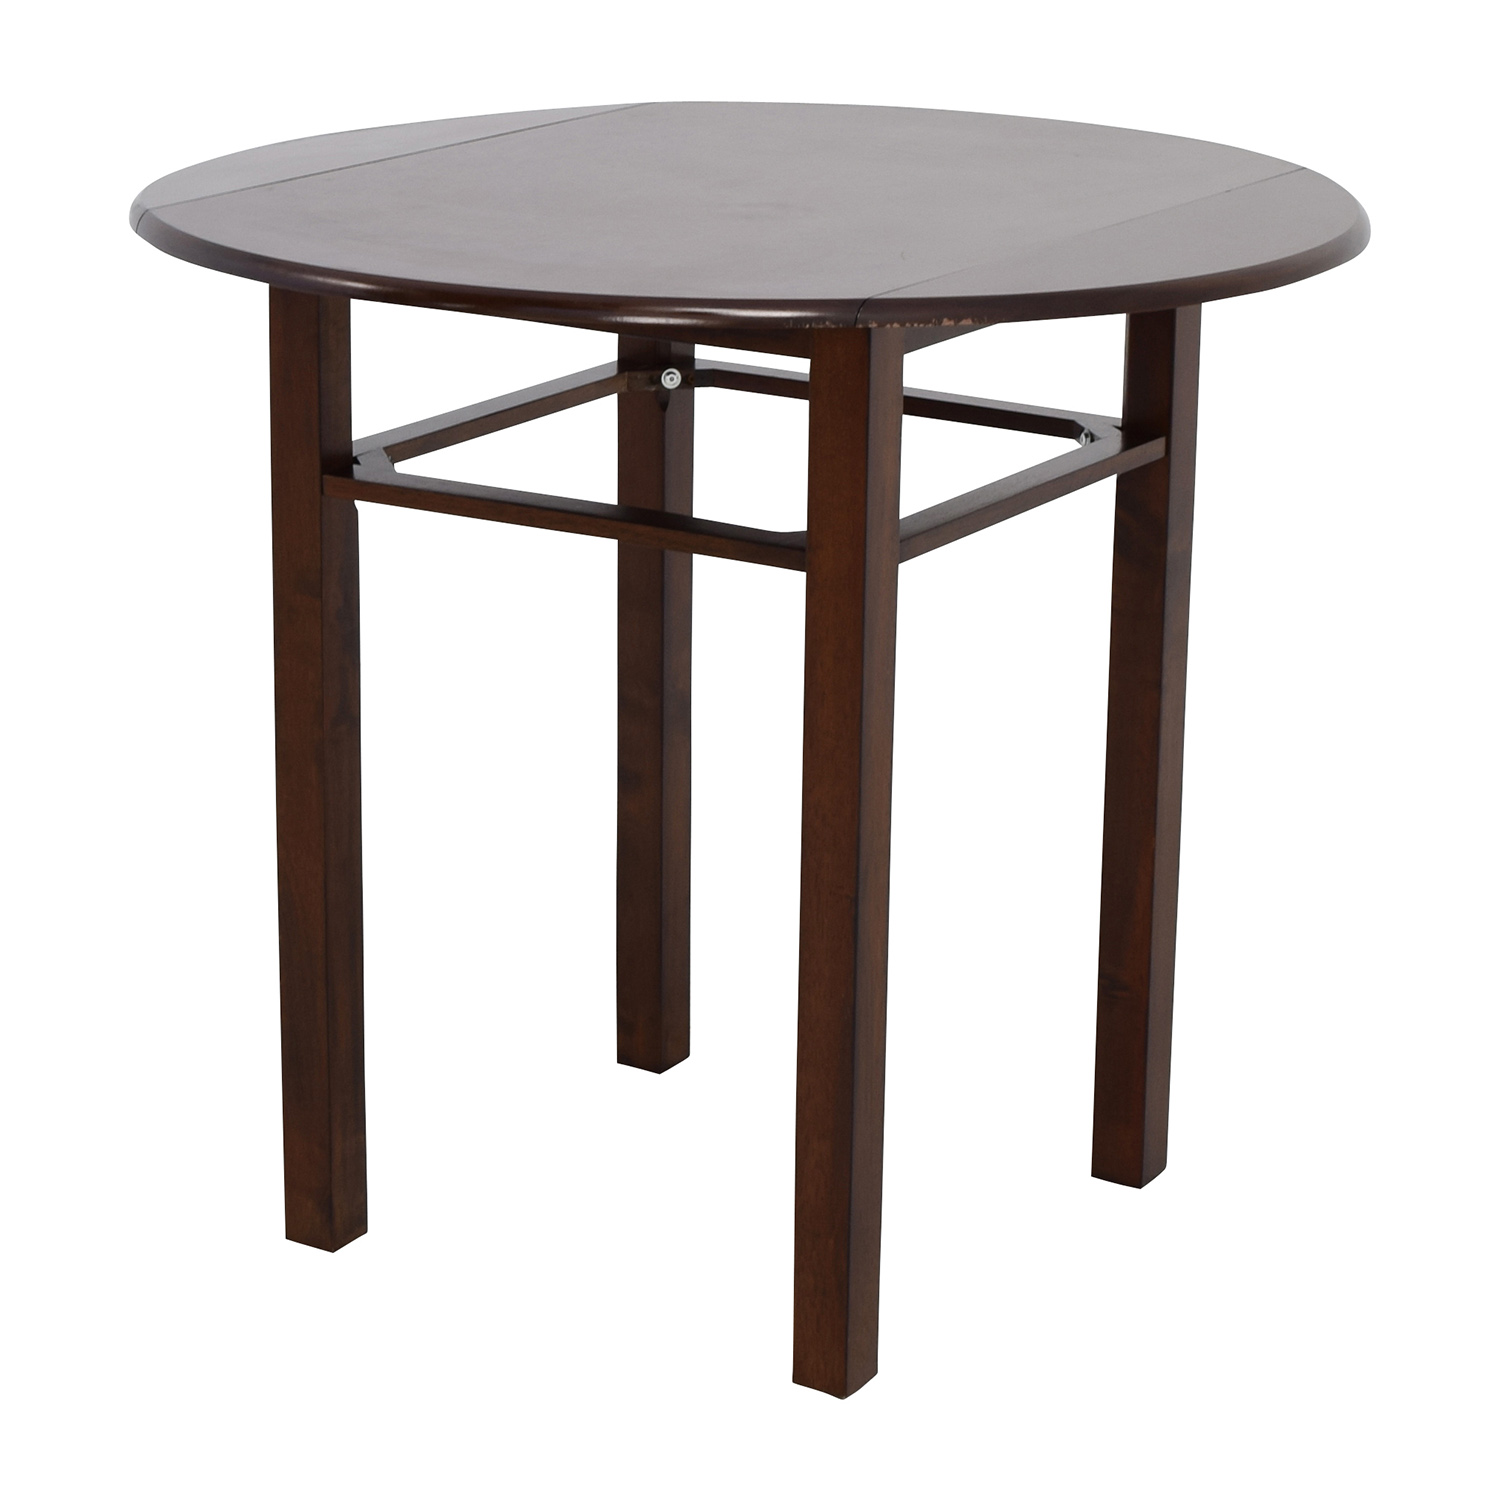 80 off whalen whalen round drop leaf dining table tables for Drop leaf dining table